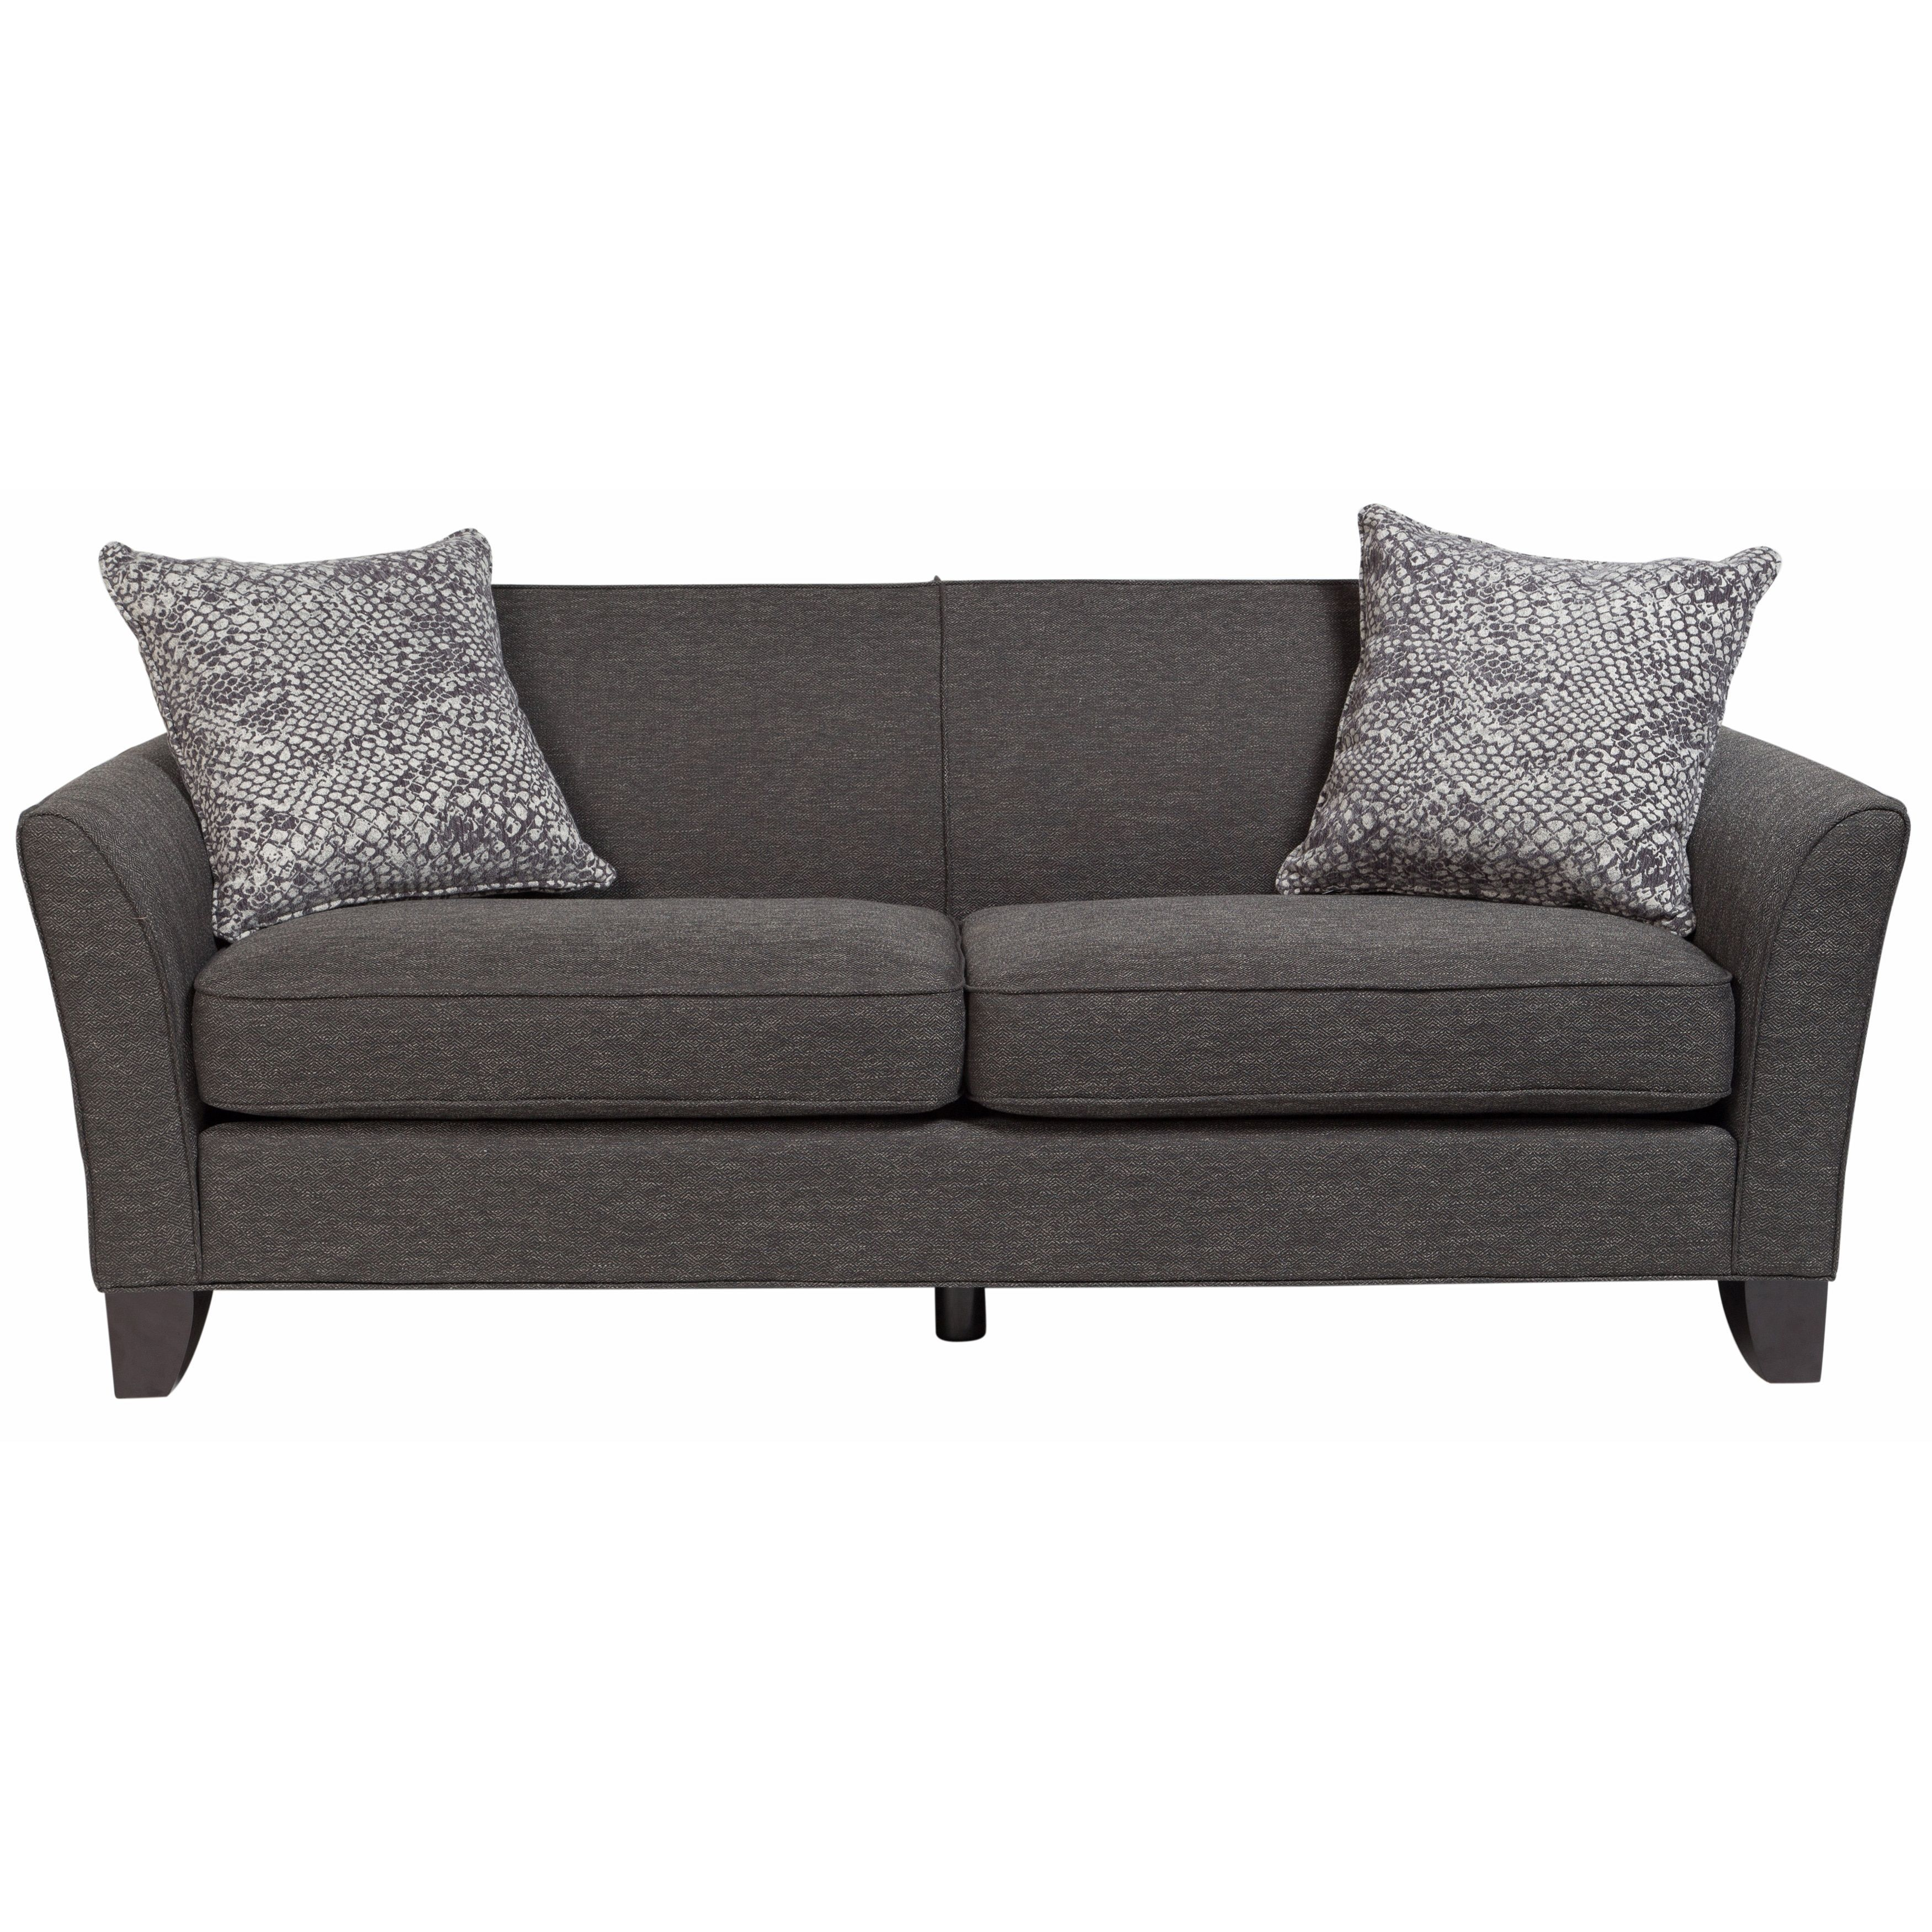 Porter Medusa Charcoal Mid Century Modern Sofa with 2 Woven